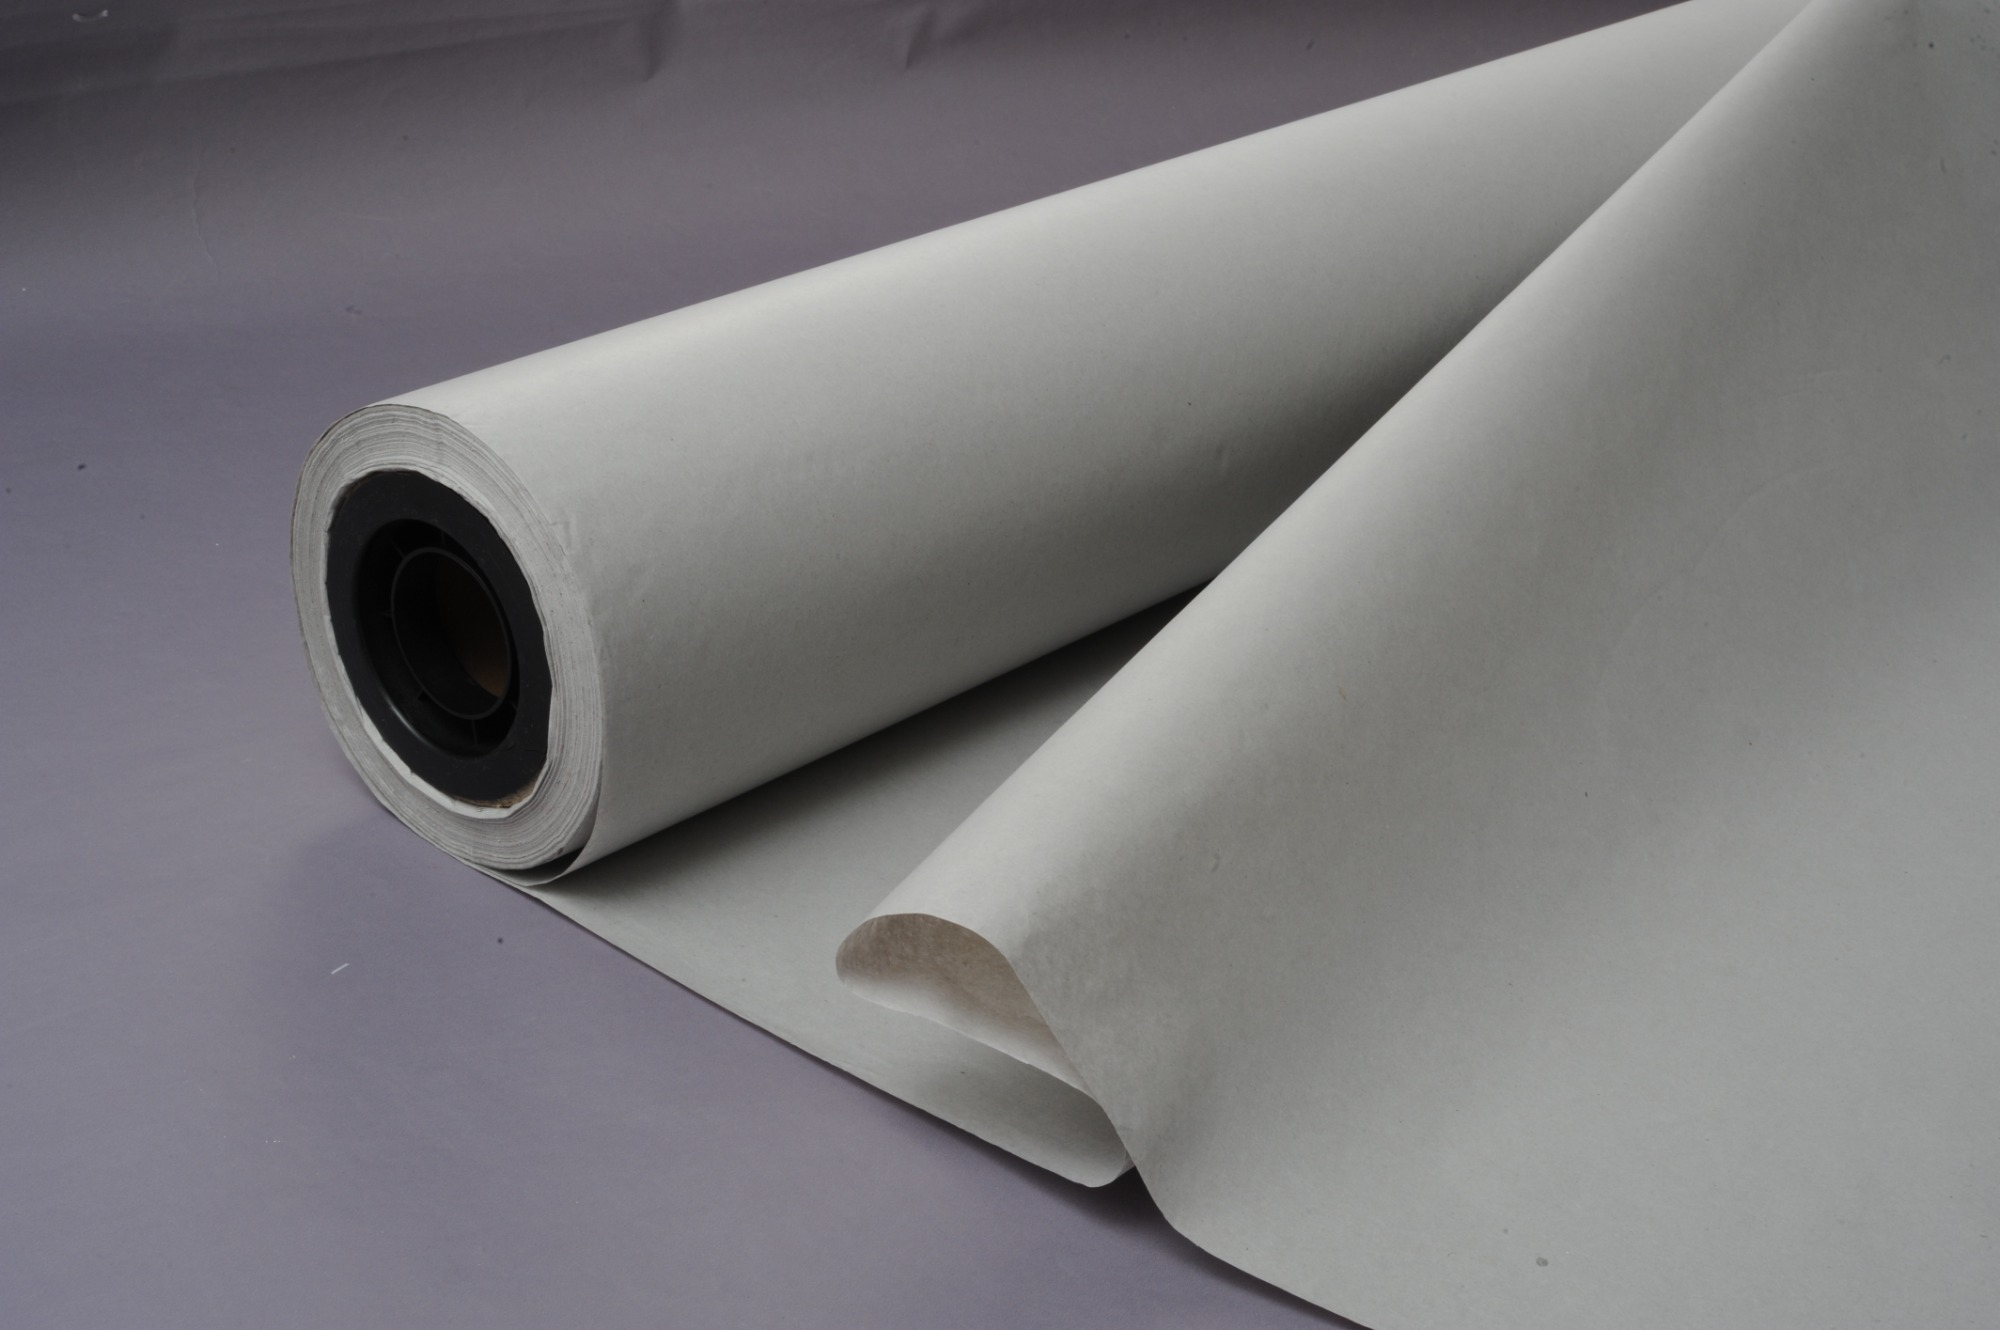 What is a good sublimation protection paper?